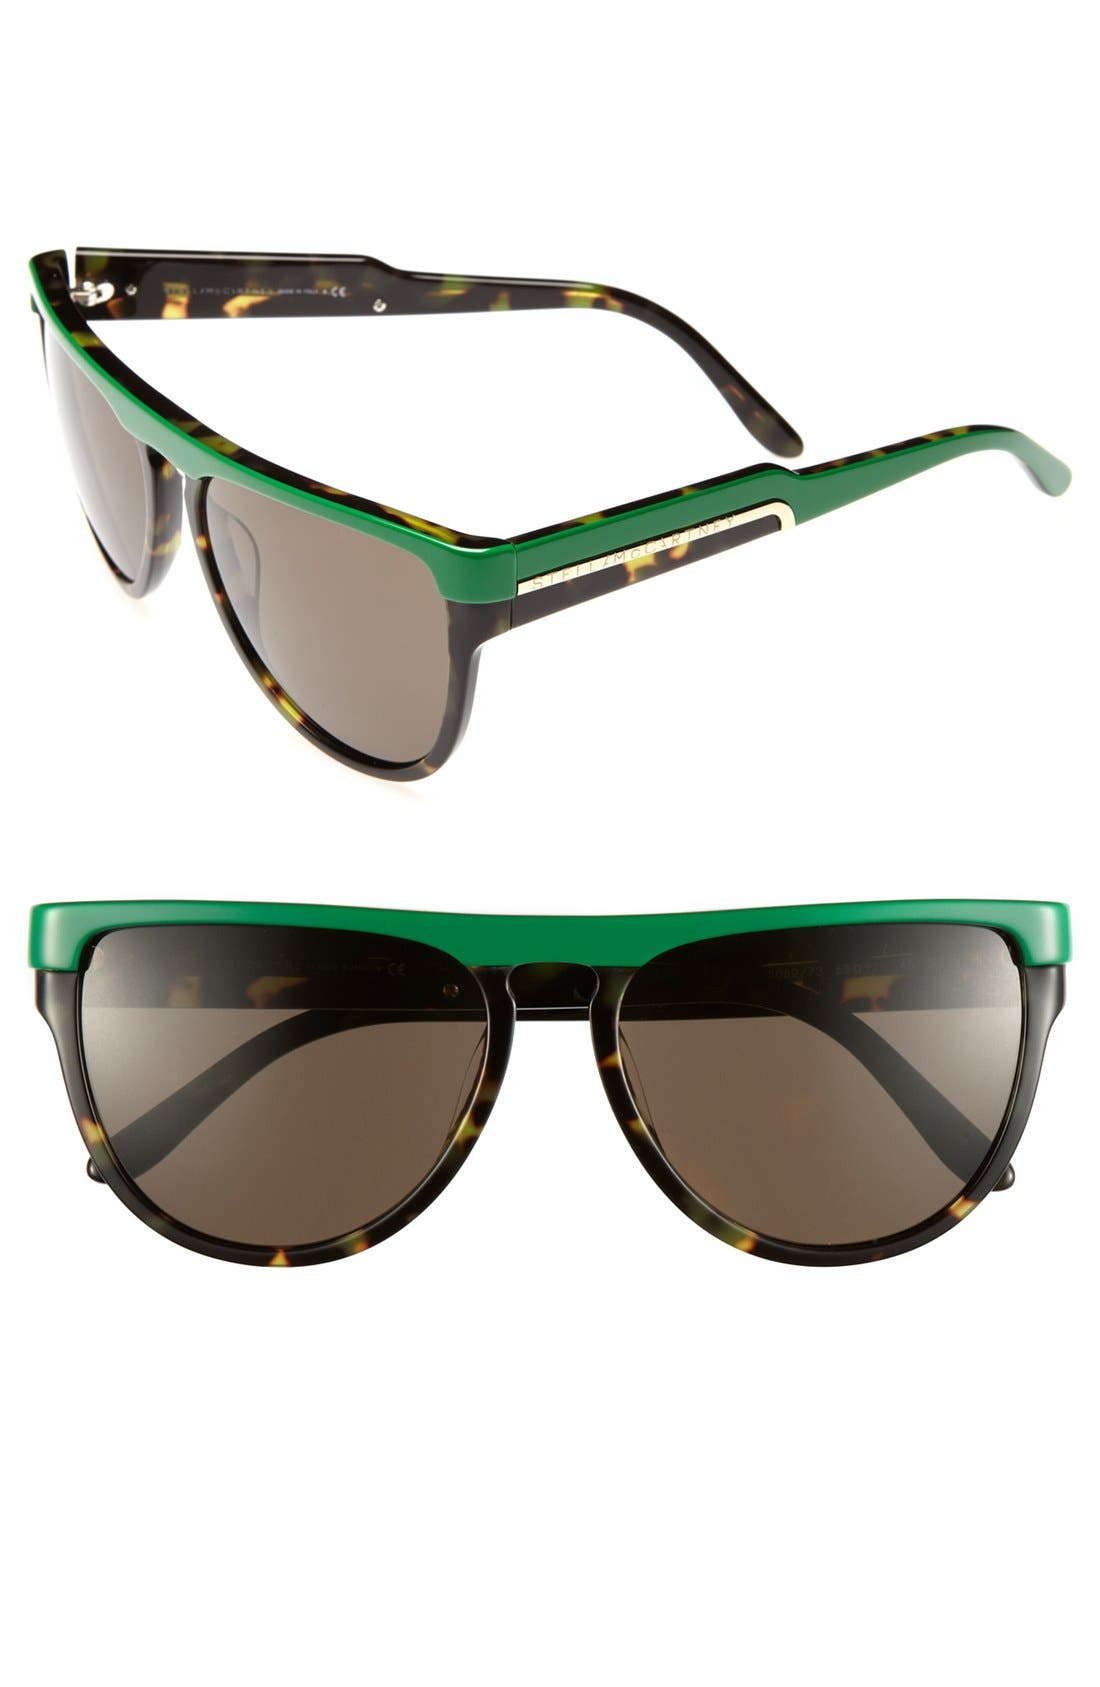 Main Image - Stella McCartney 59mm Sunglasses